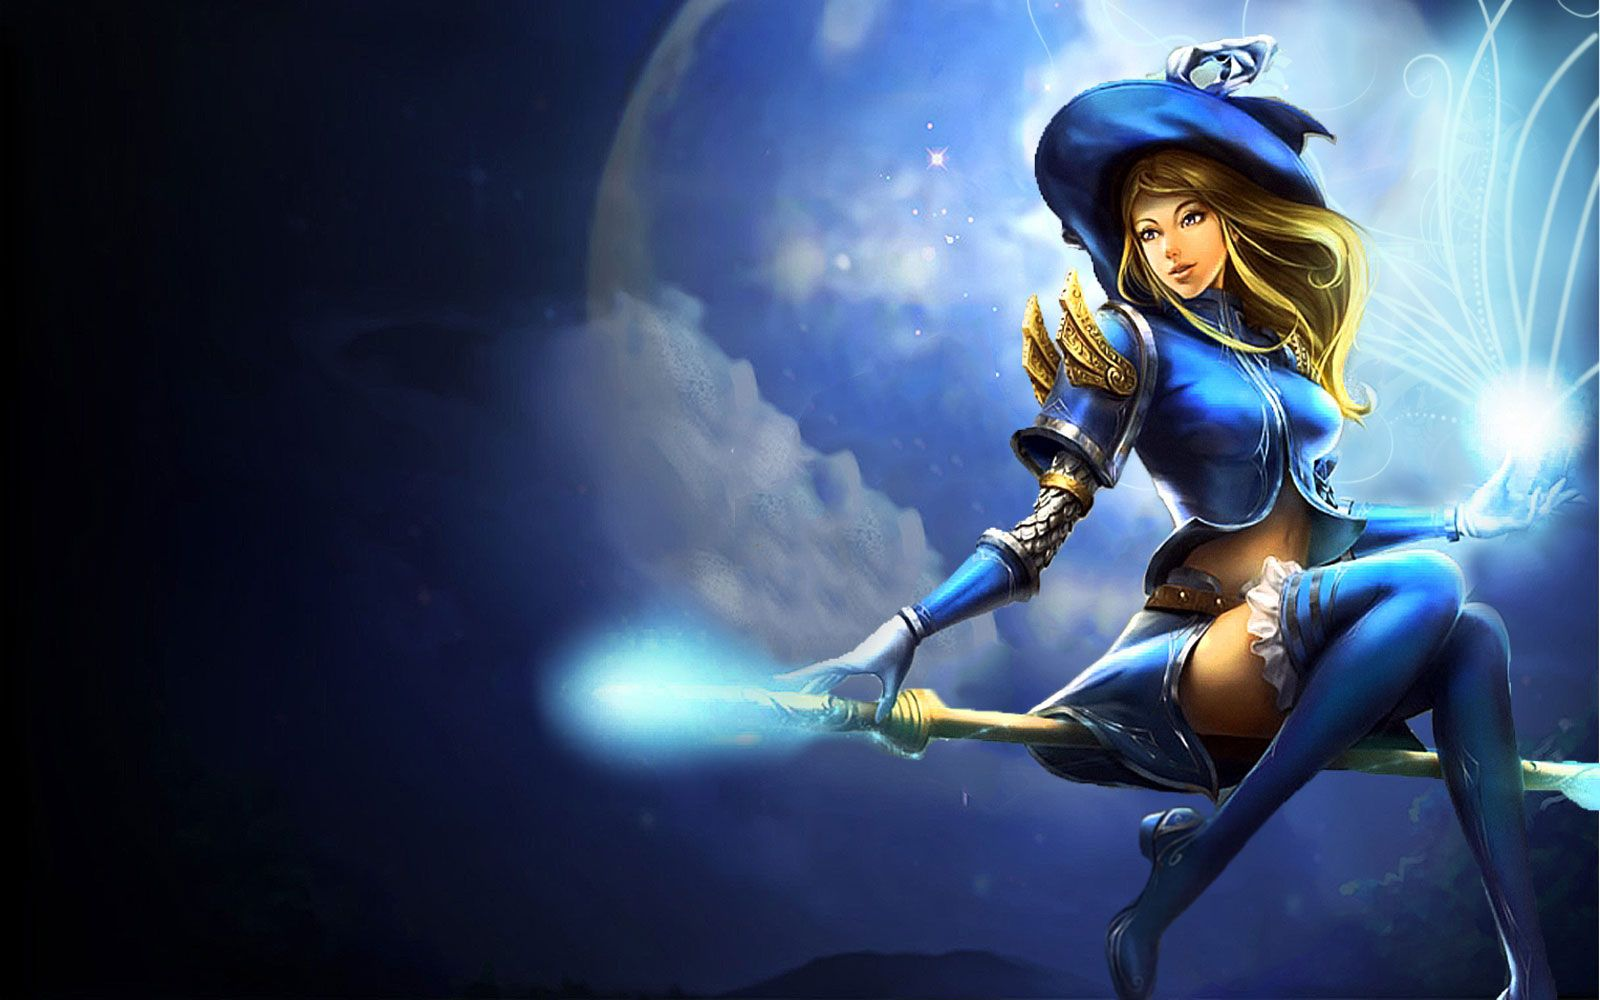 Video Game League Of Legends Lux Wallpaper League Of Legends